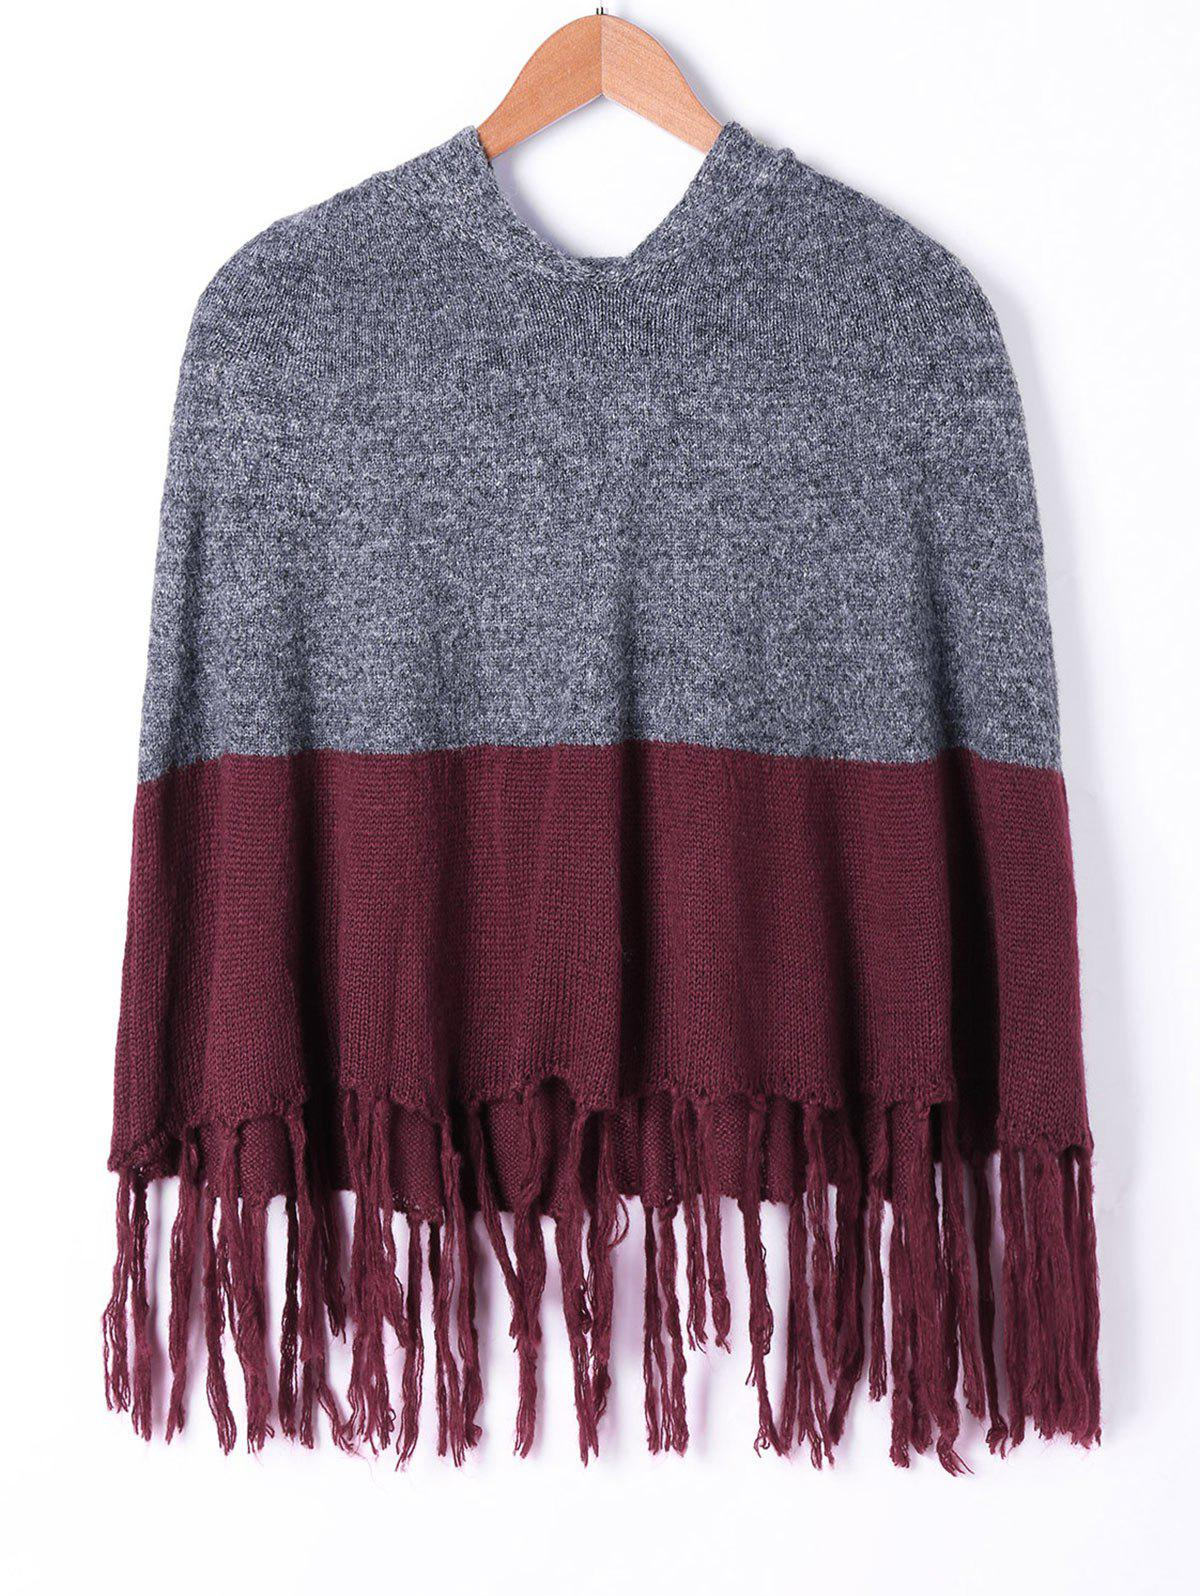 Hooded Tassel Two Tone Knit Cape - COLORMIX 2XL